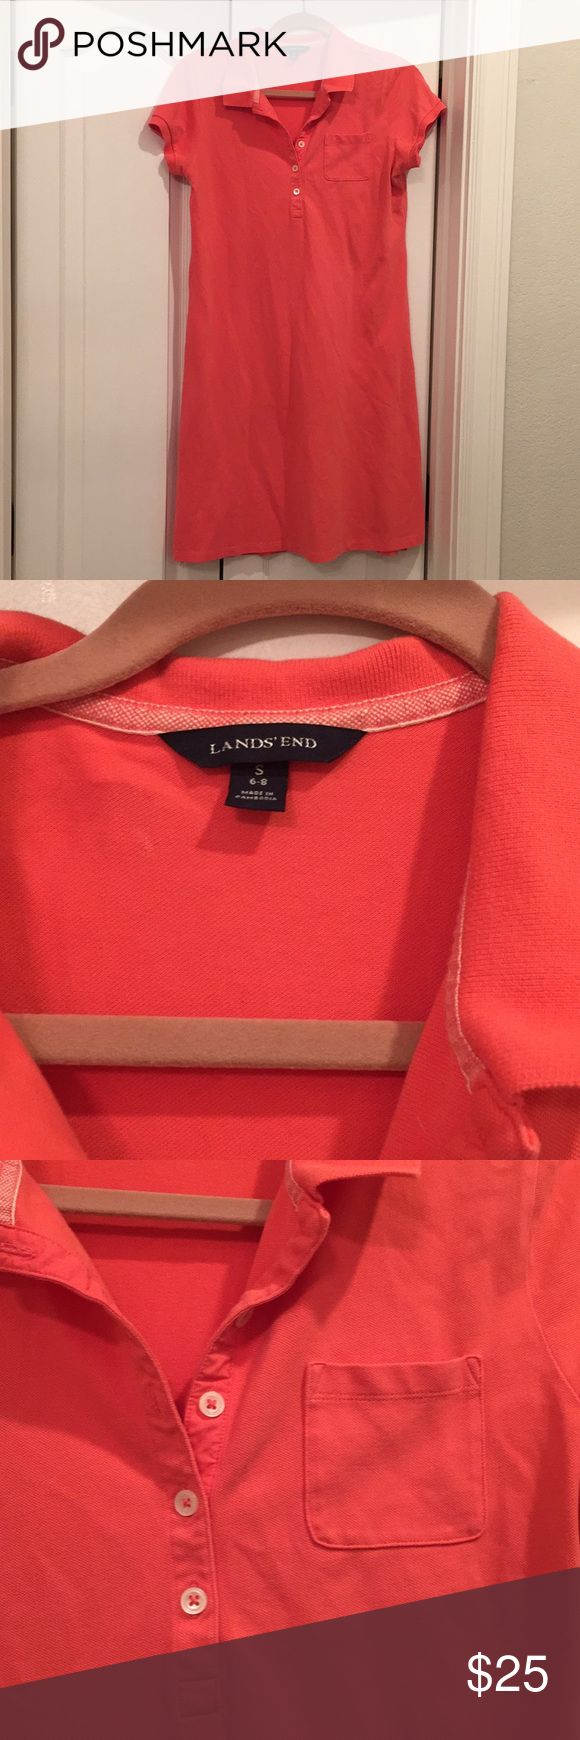 Coral Polo shirt dress Lands End Coral polo shirt dress. Comfortable and easy for spring and summer. Good used condition. From a smoke free and pet free home. Lands' End Dresses